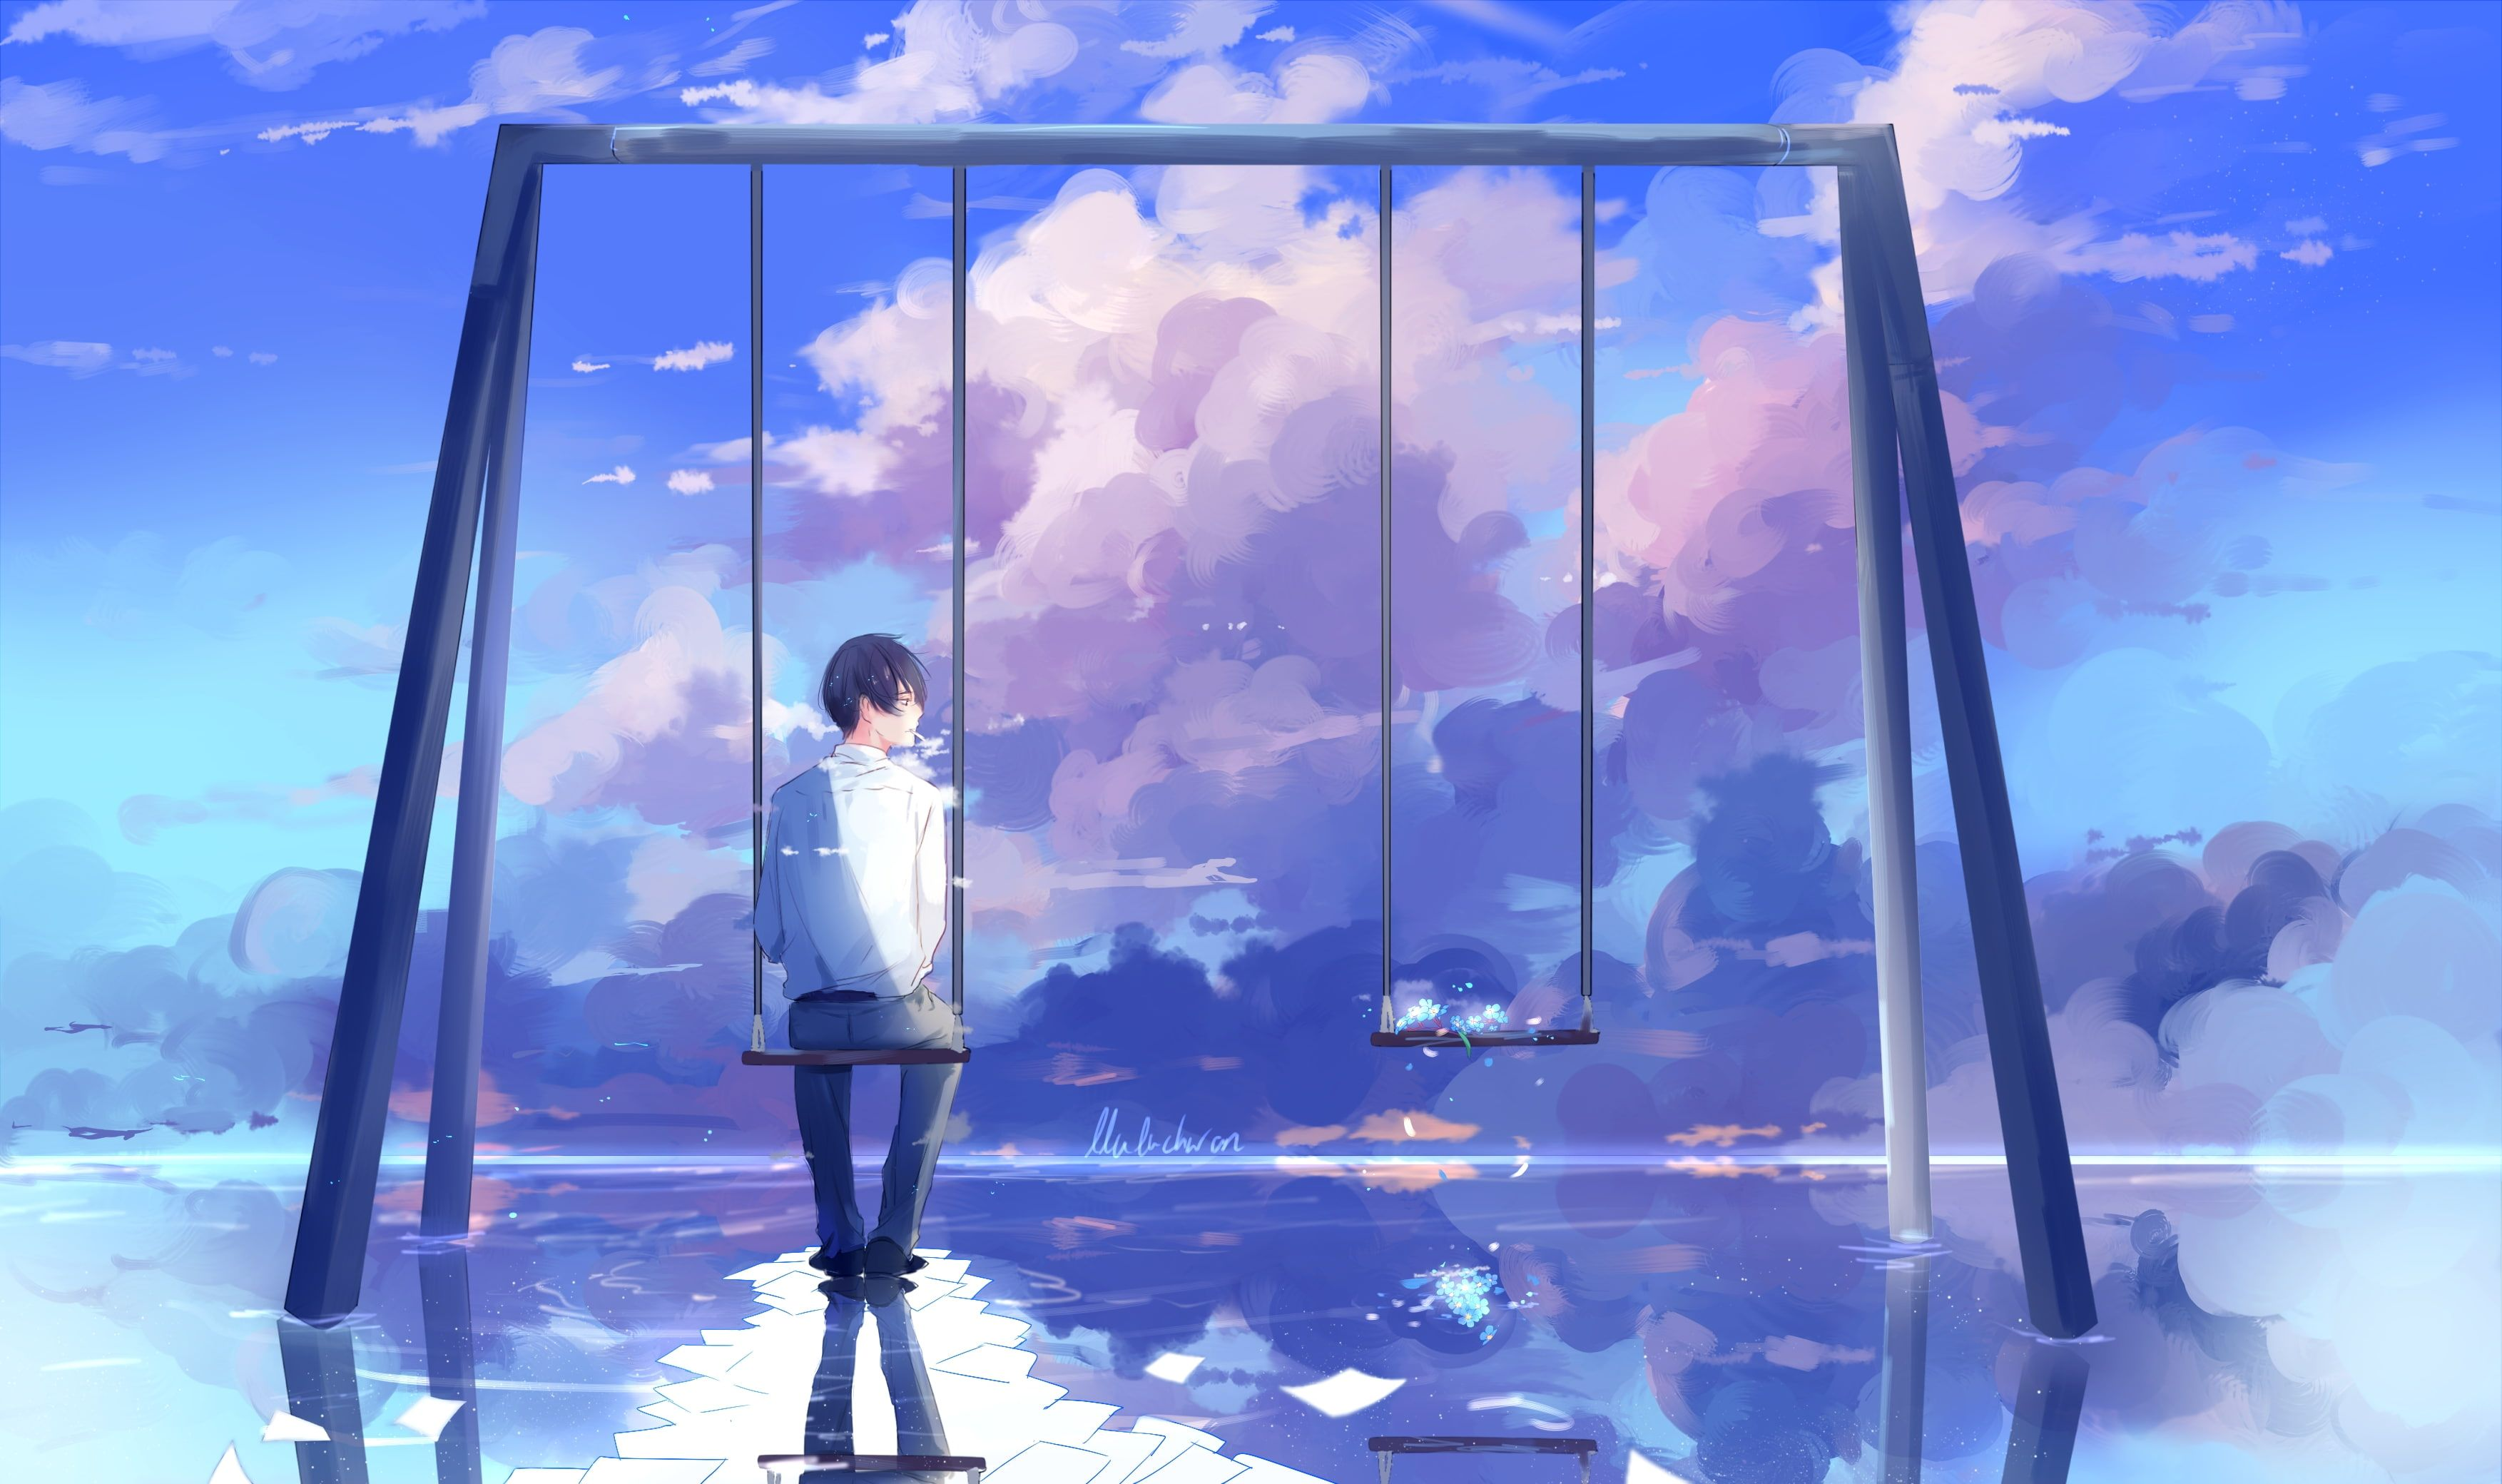 anime boy scenic swing clouds back view reflection Anime 2K 3507x2080